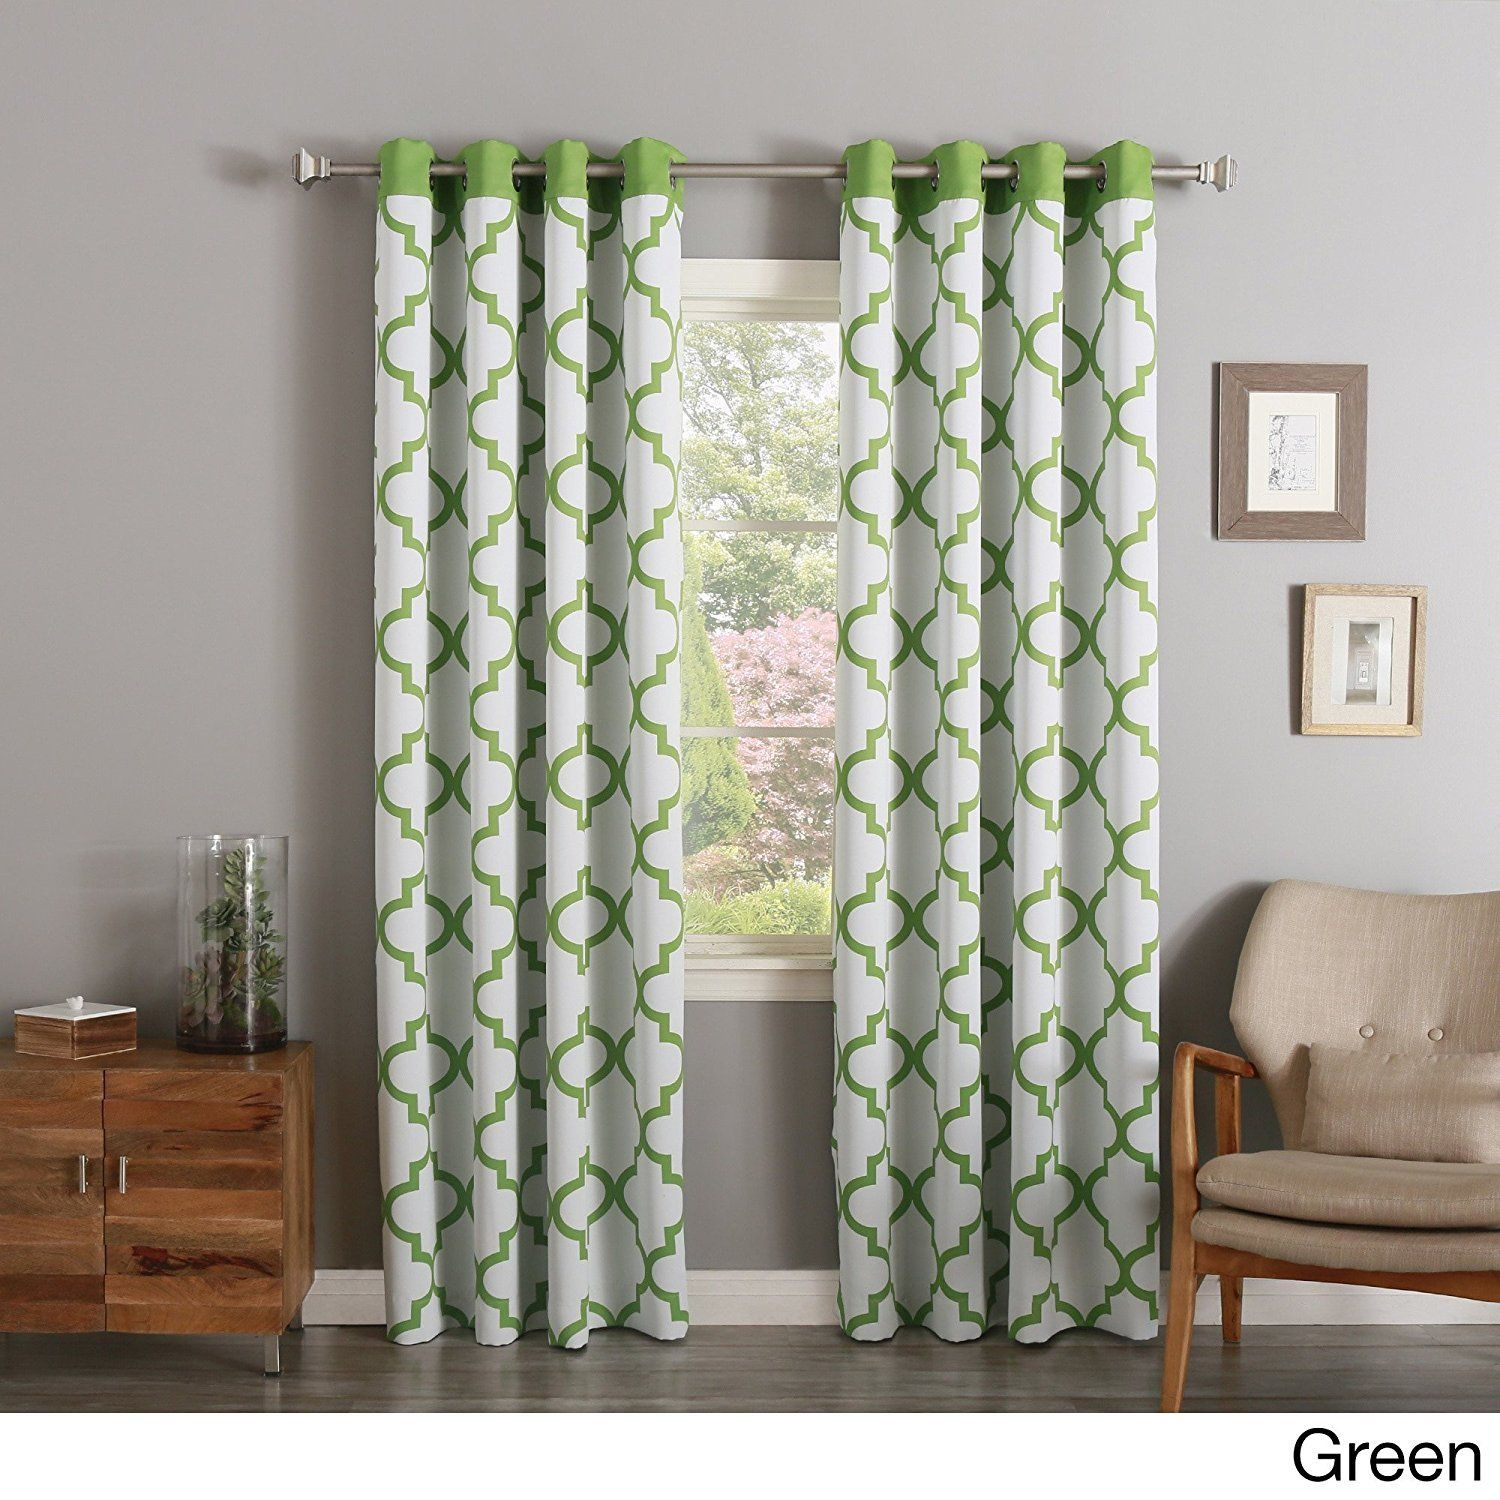 dream valances eyelet home for byron curtains bedroom ideas picture vintage outstanding made my green myream blockout and curtain ready sage